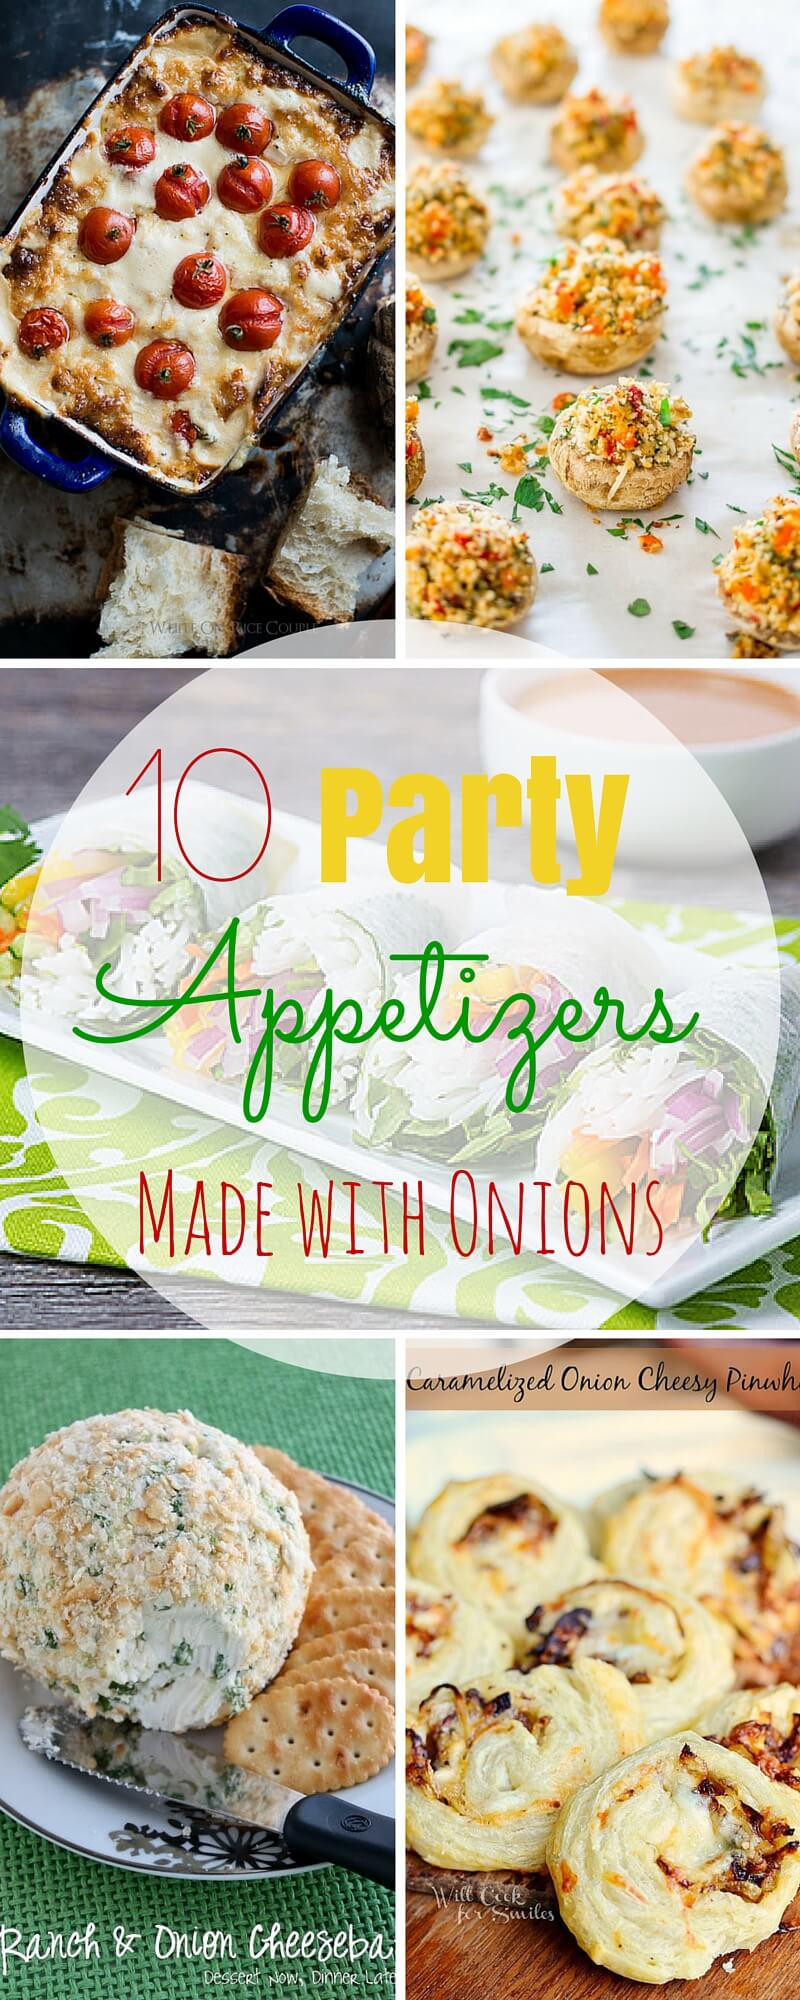 10 Party Appetizers Made with Onions